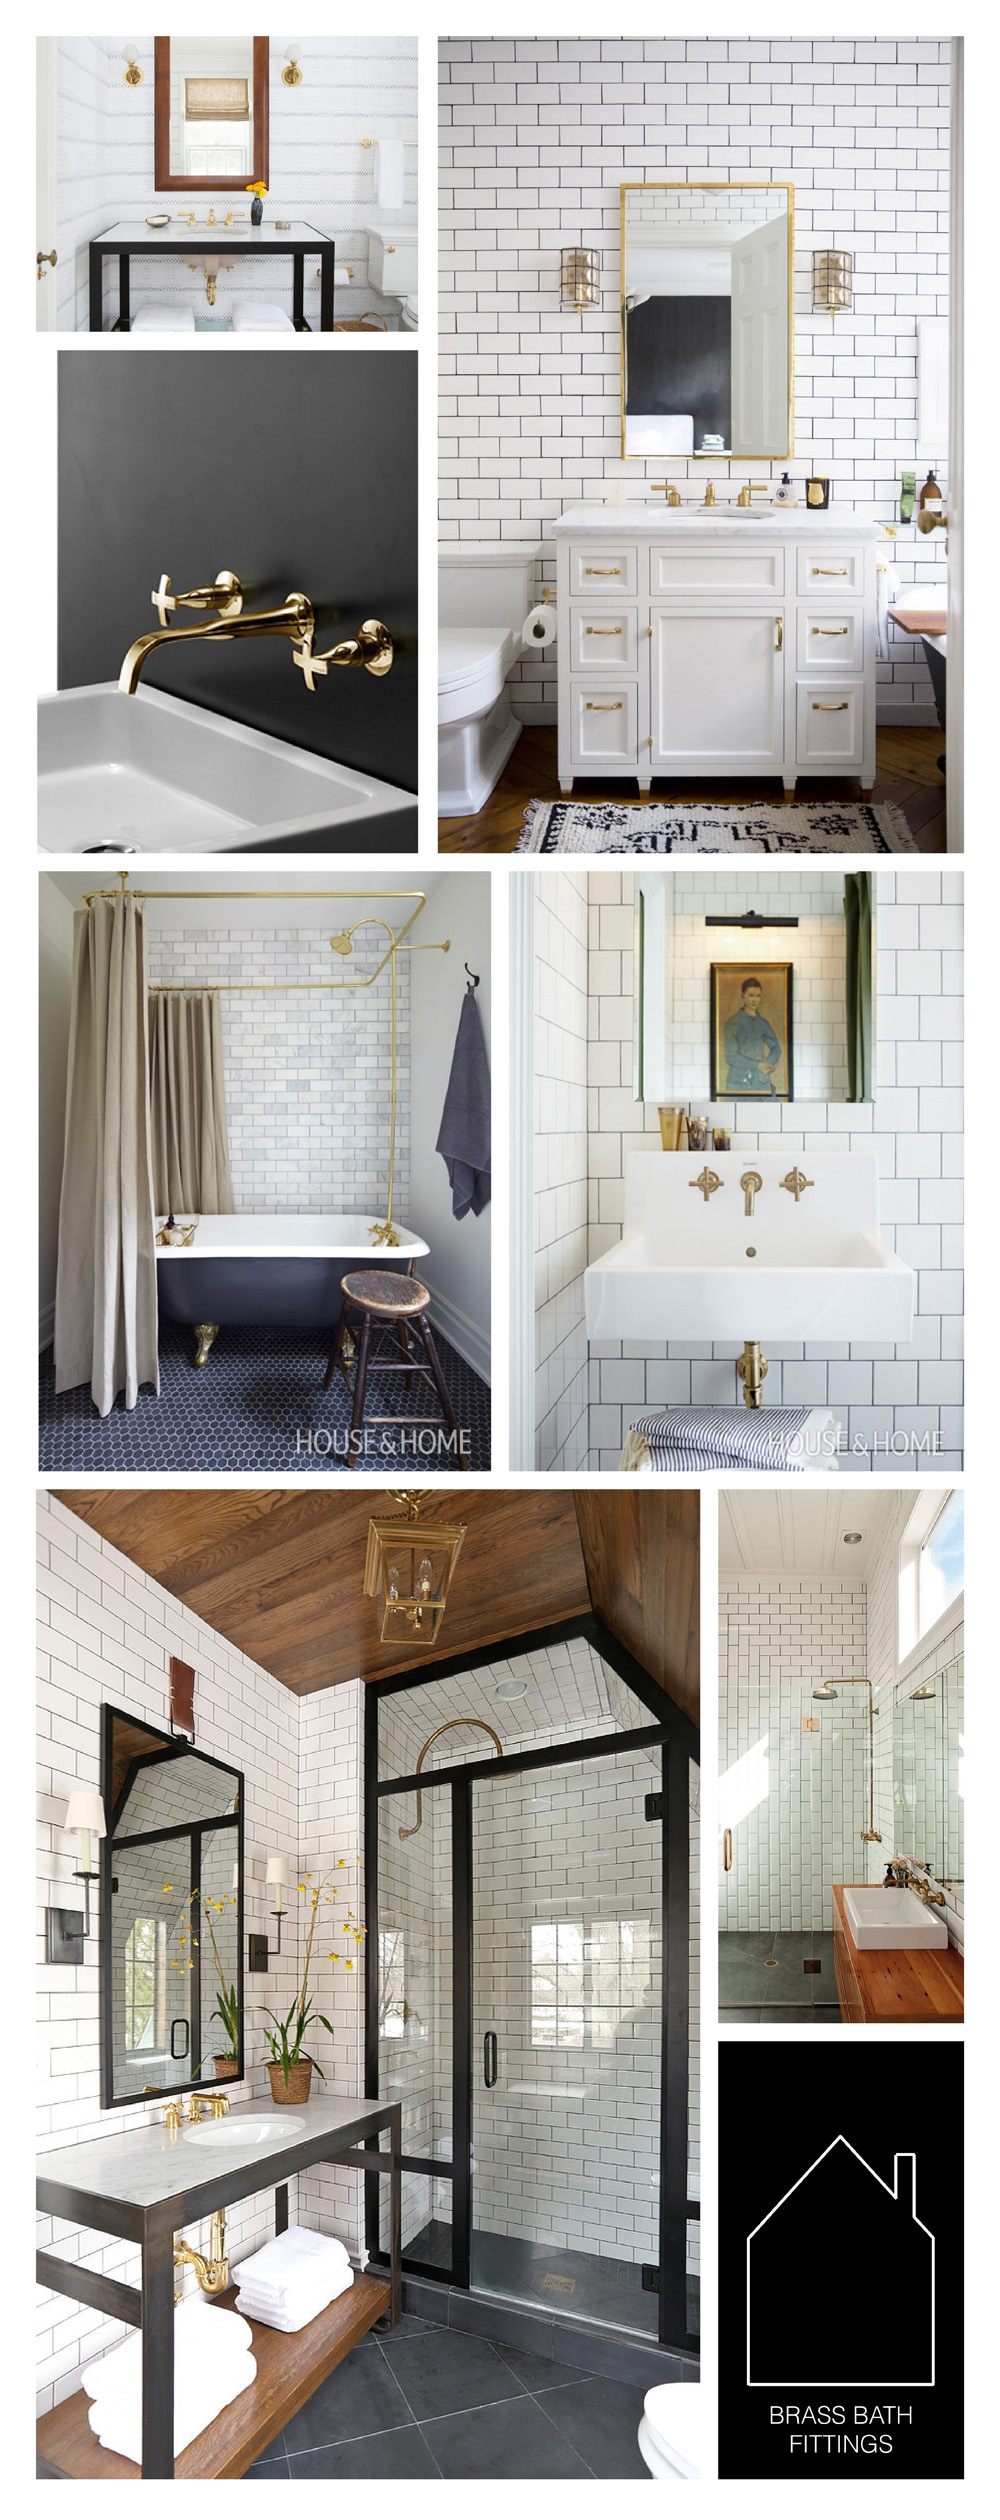 from top left - design by Nate Berkus Team via Domino - home of Ali Cayne via Domino - brass fixture source unknown -  Mandy Milk's bathroom via House & Home - Mandy Milk's bathroom via House & Home - design by Summer Thornton - via Urbis Magazine